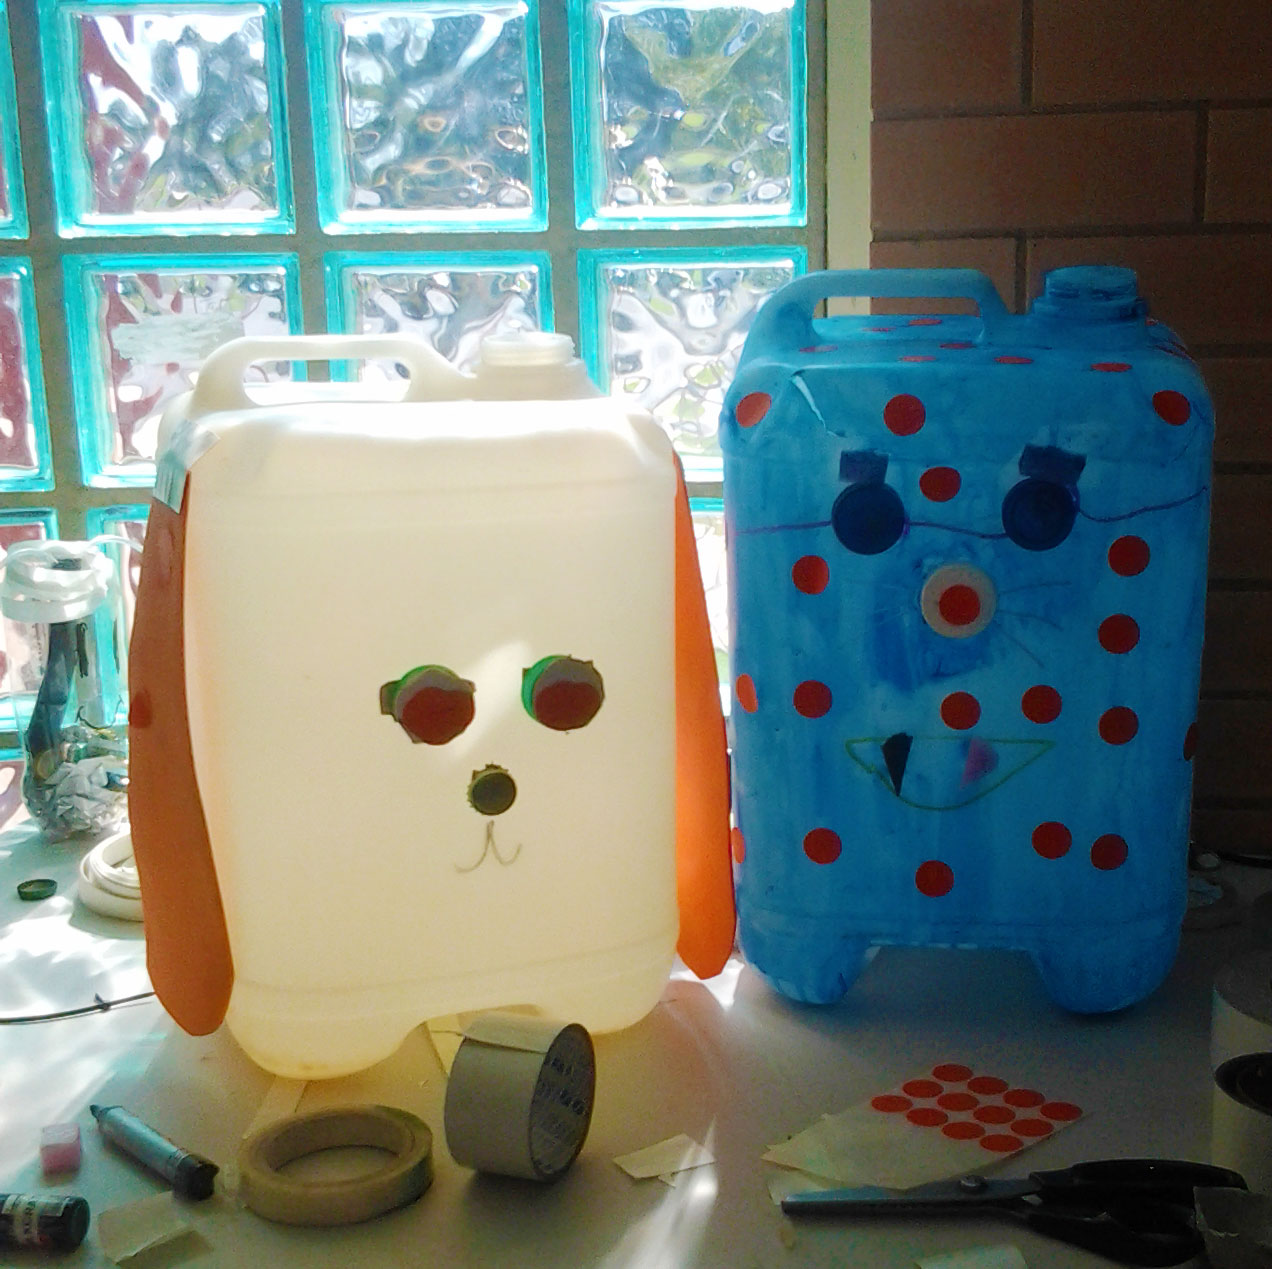 Awesome local artists milkcrate events for Creative art using waste materials